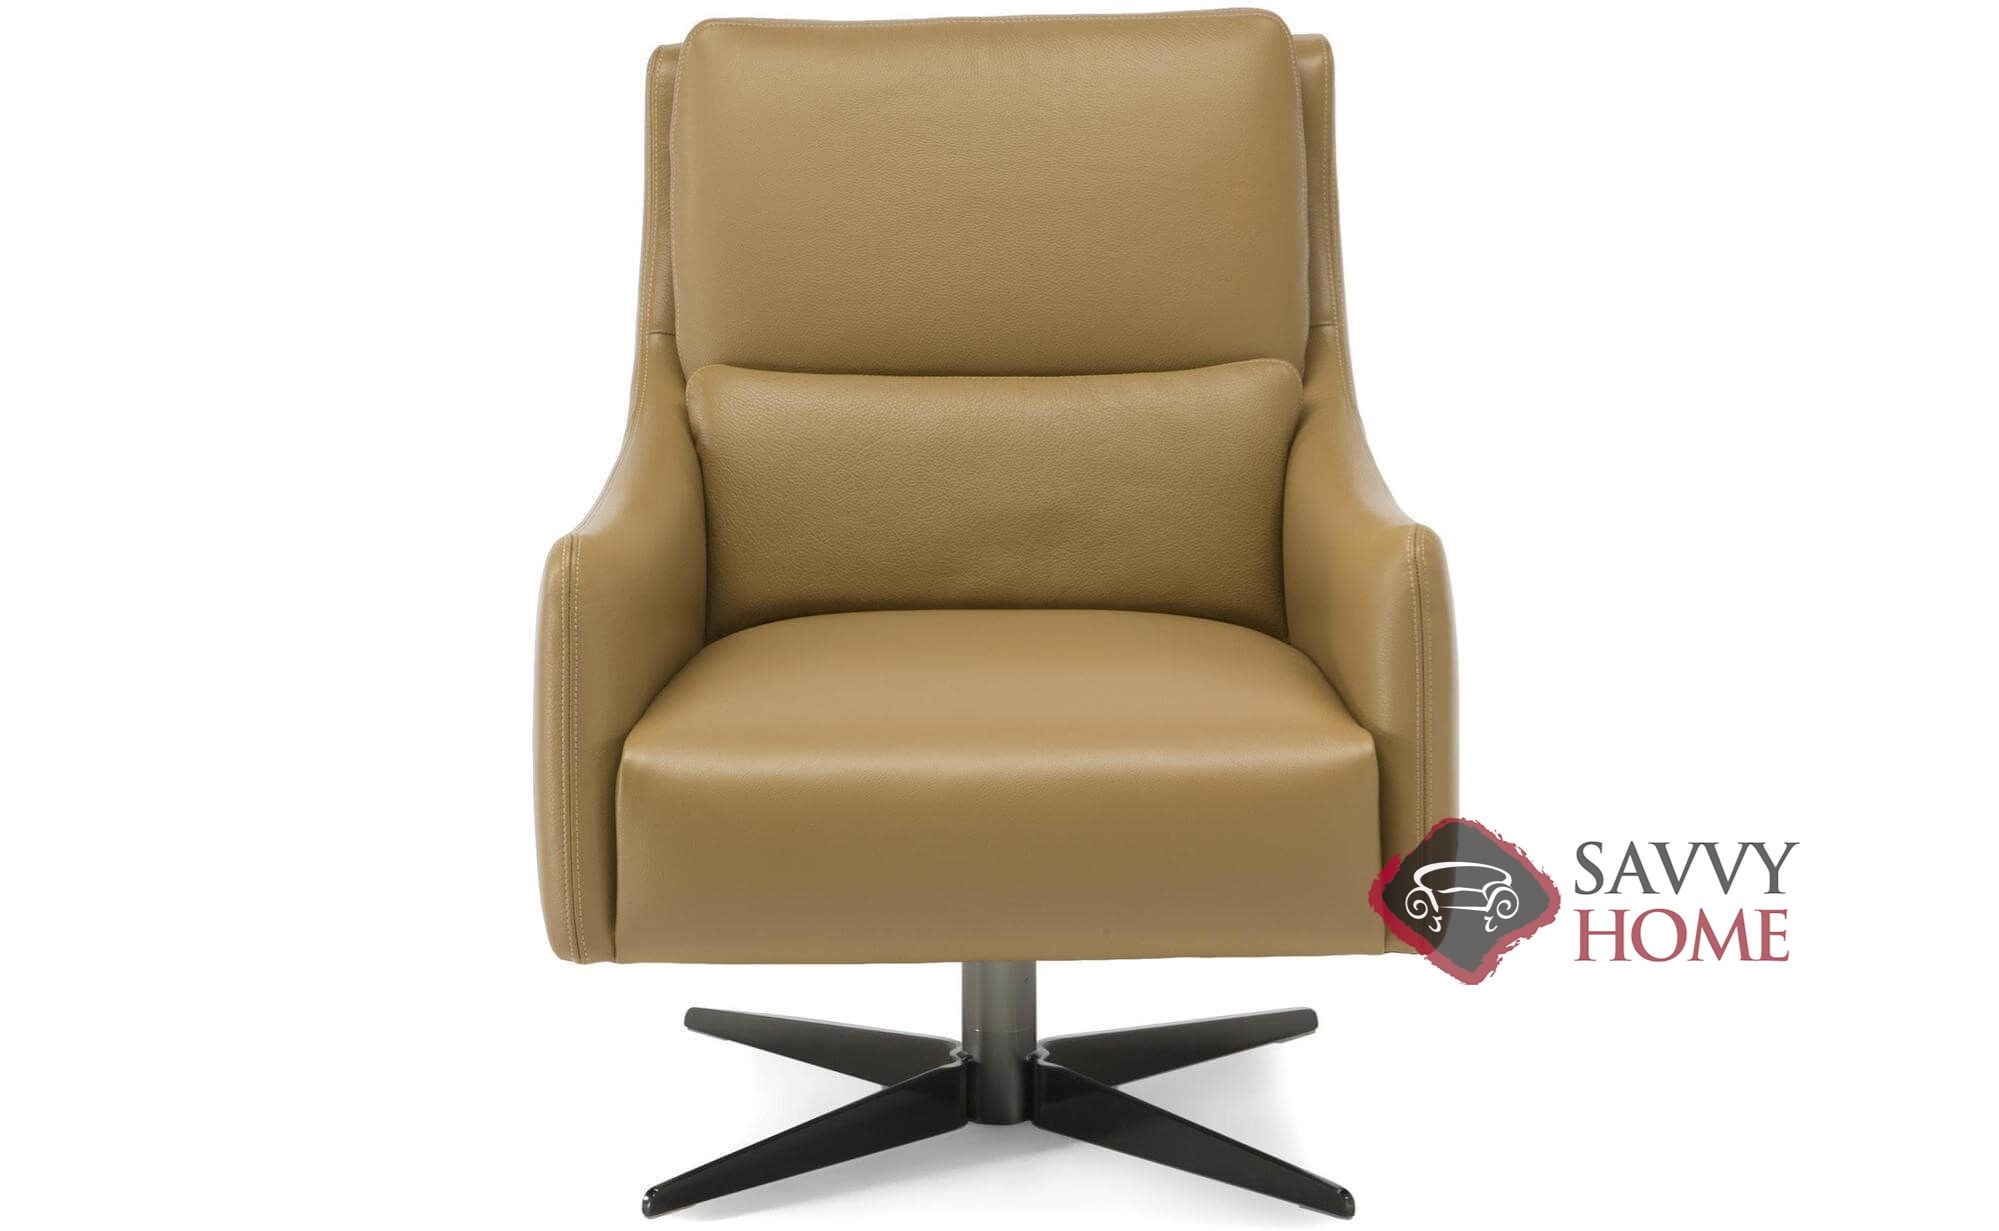 Natuzzi Swivel Chairs Home Ideas